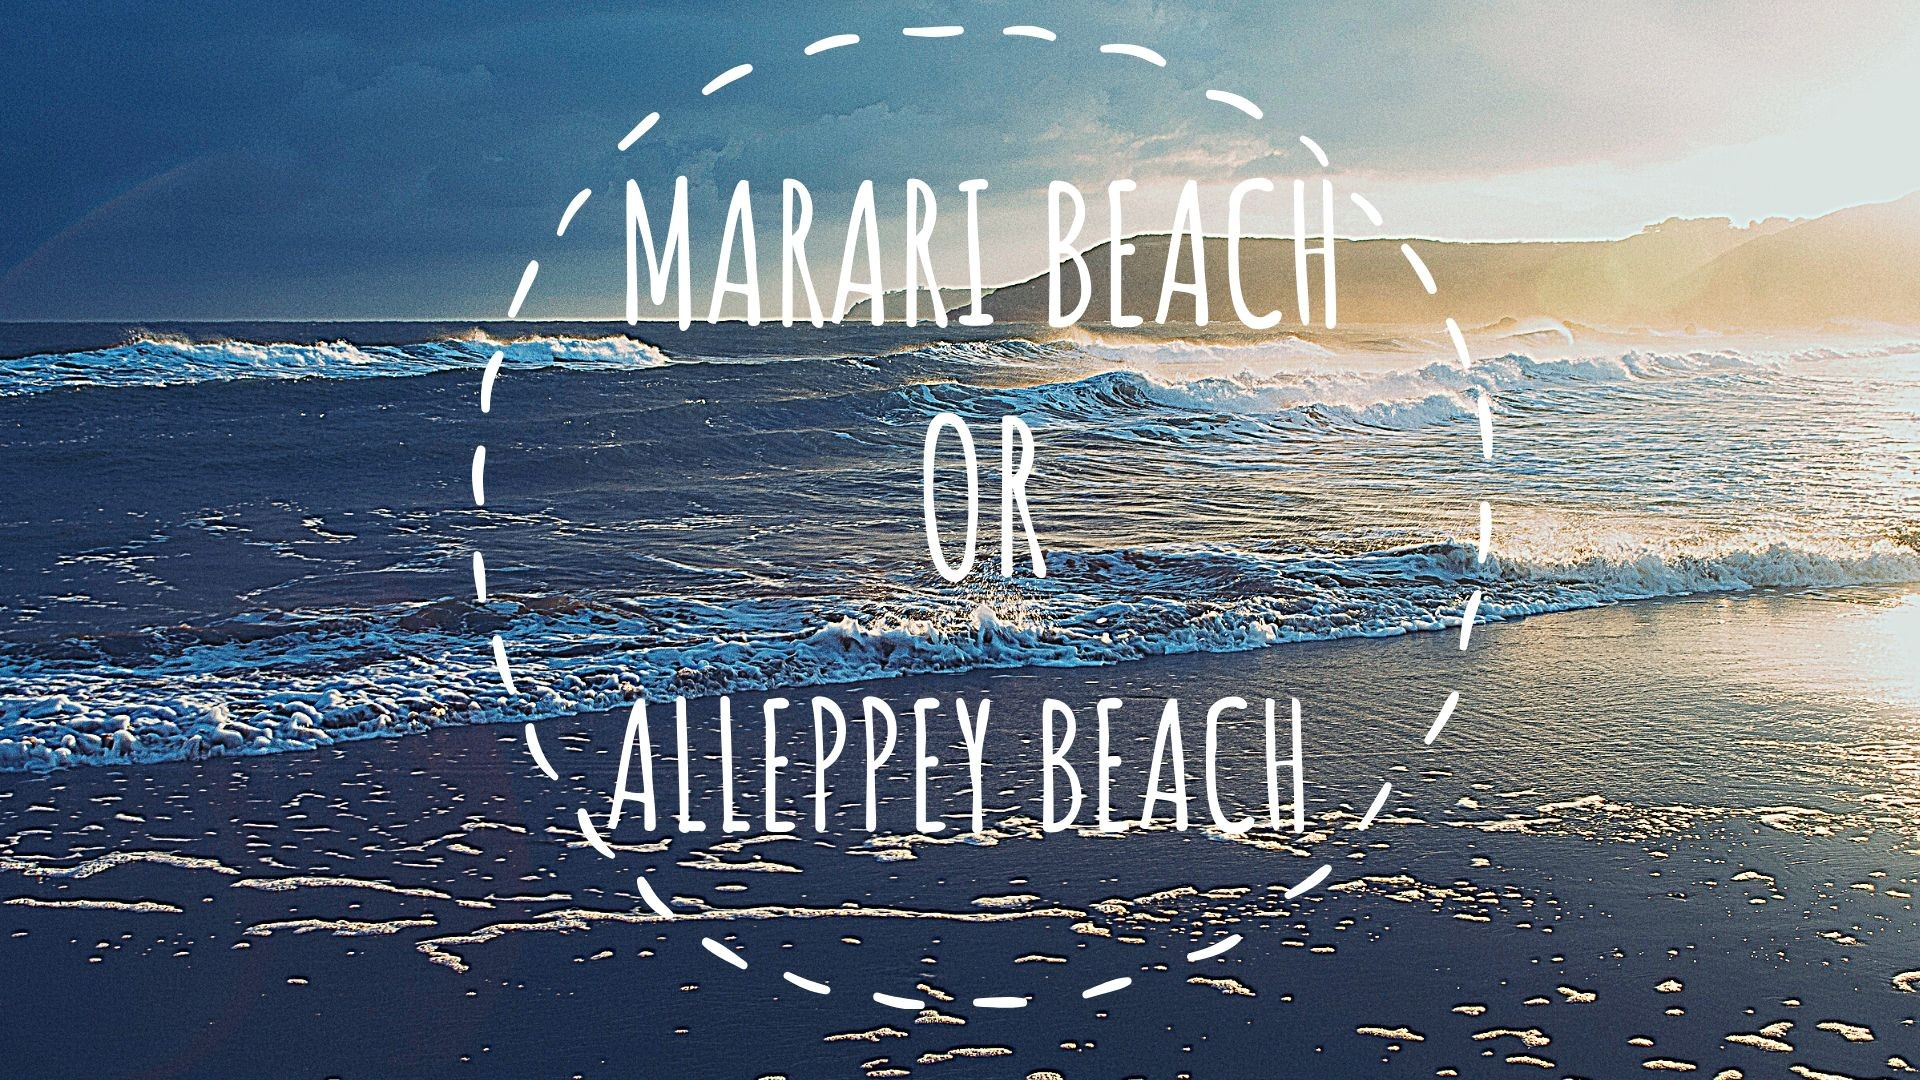 Marari or Alleppey-Which is the best beach to visit?